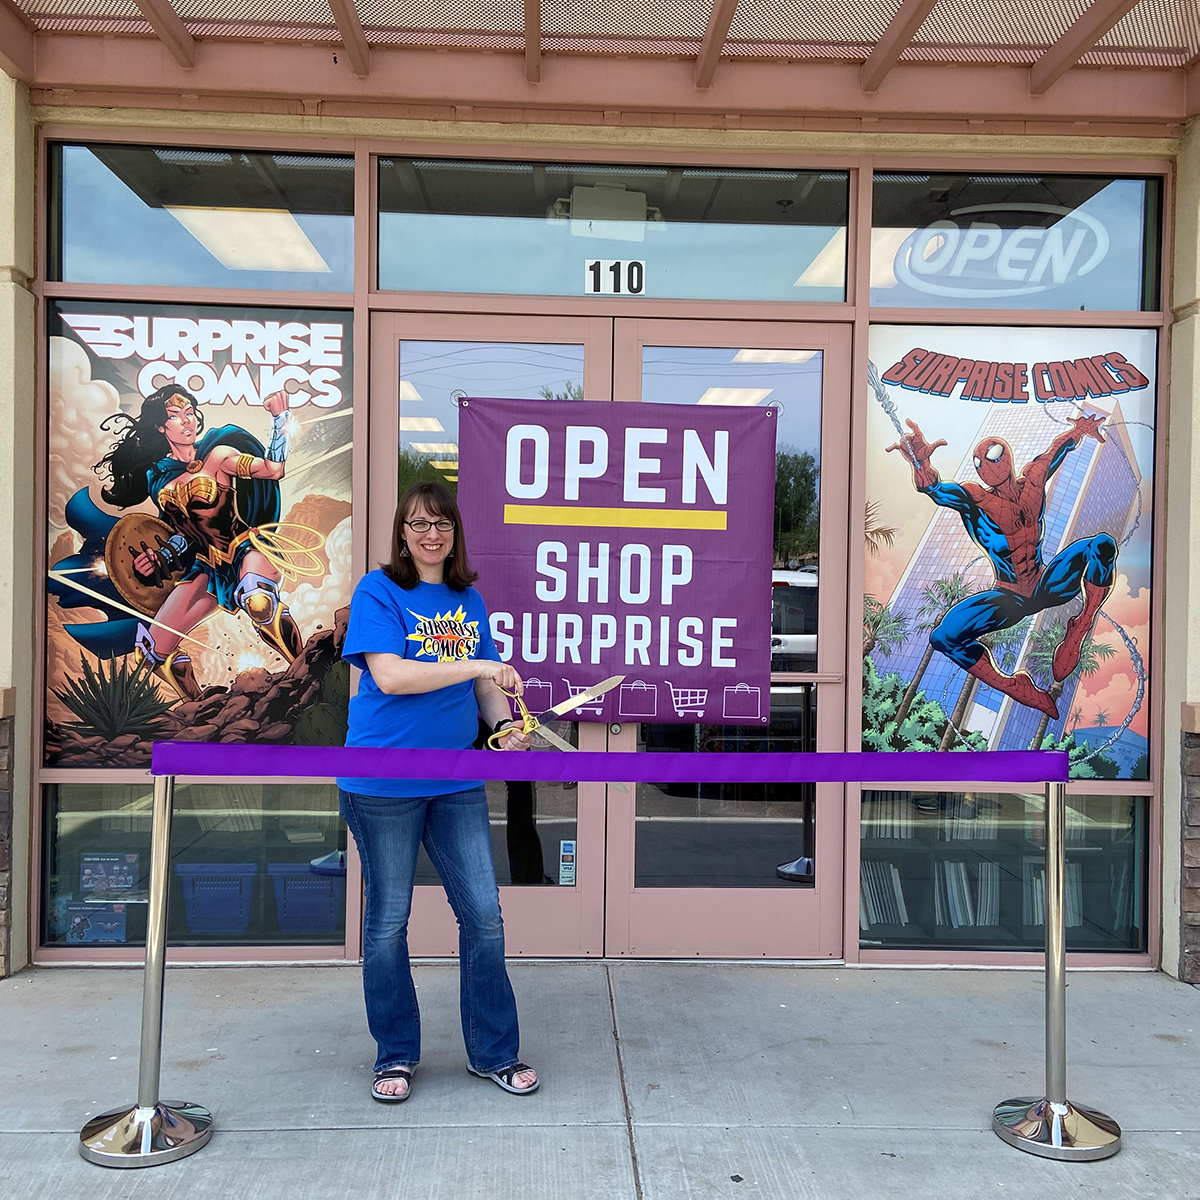 A purple ribbon is cut outside Surprise Comics for the business' re-opening.